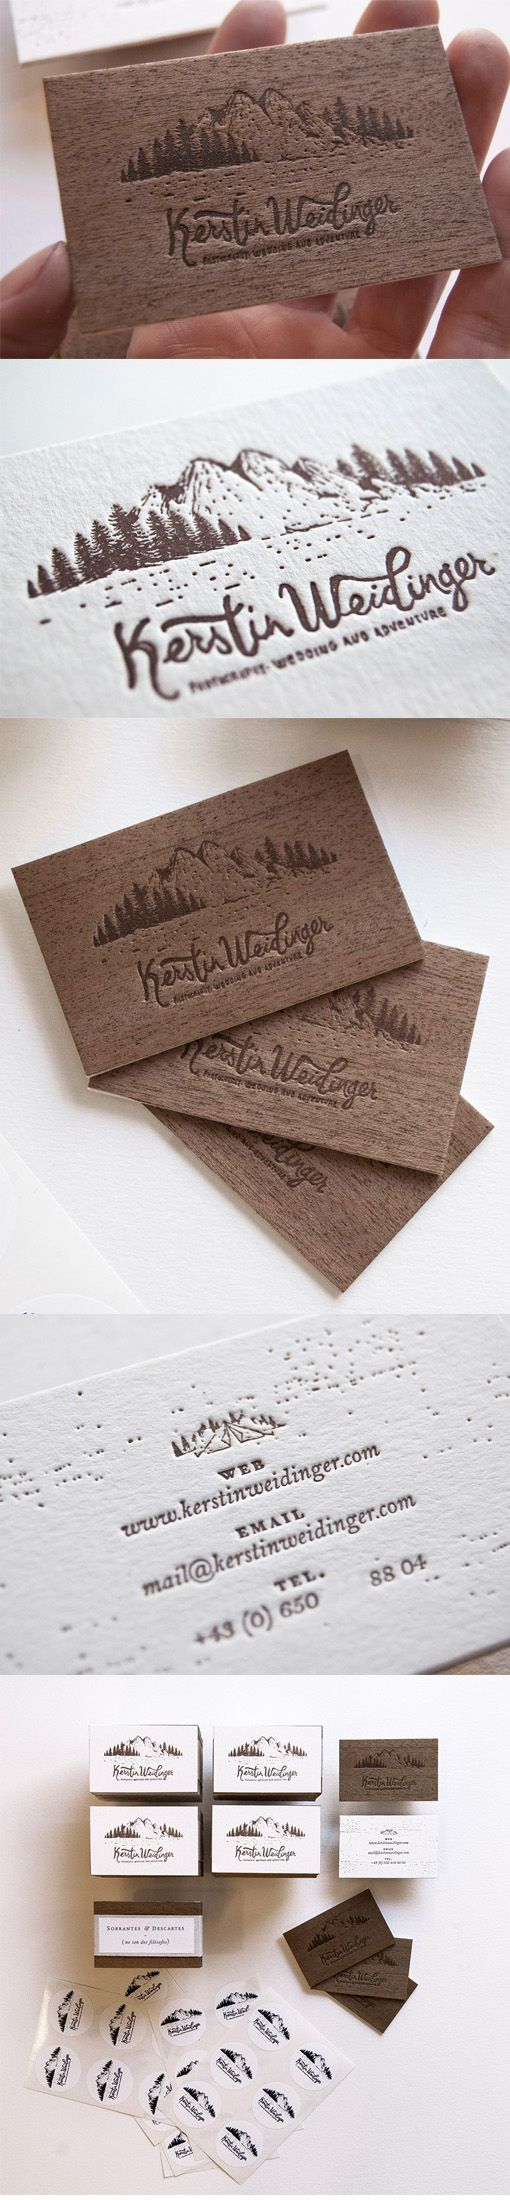 11871 best custom business cards images on pinterest card gorgeous letterpress wood and paper business card for a wedding photographer magicingreecefo Image collections